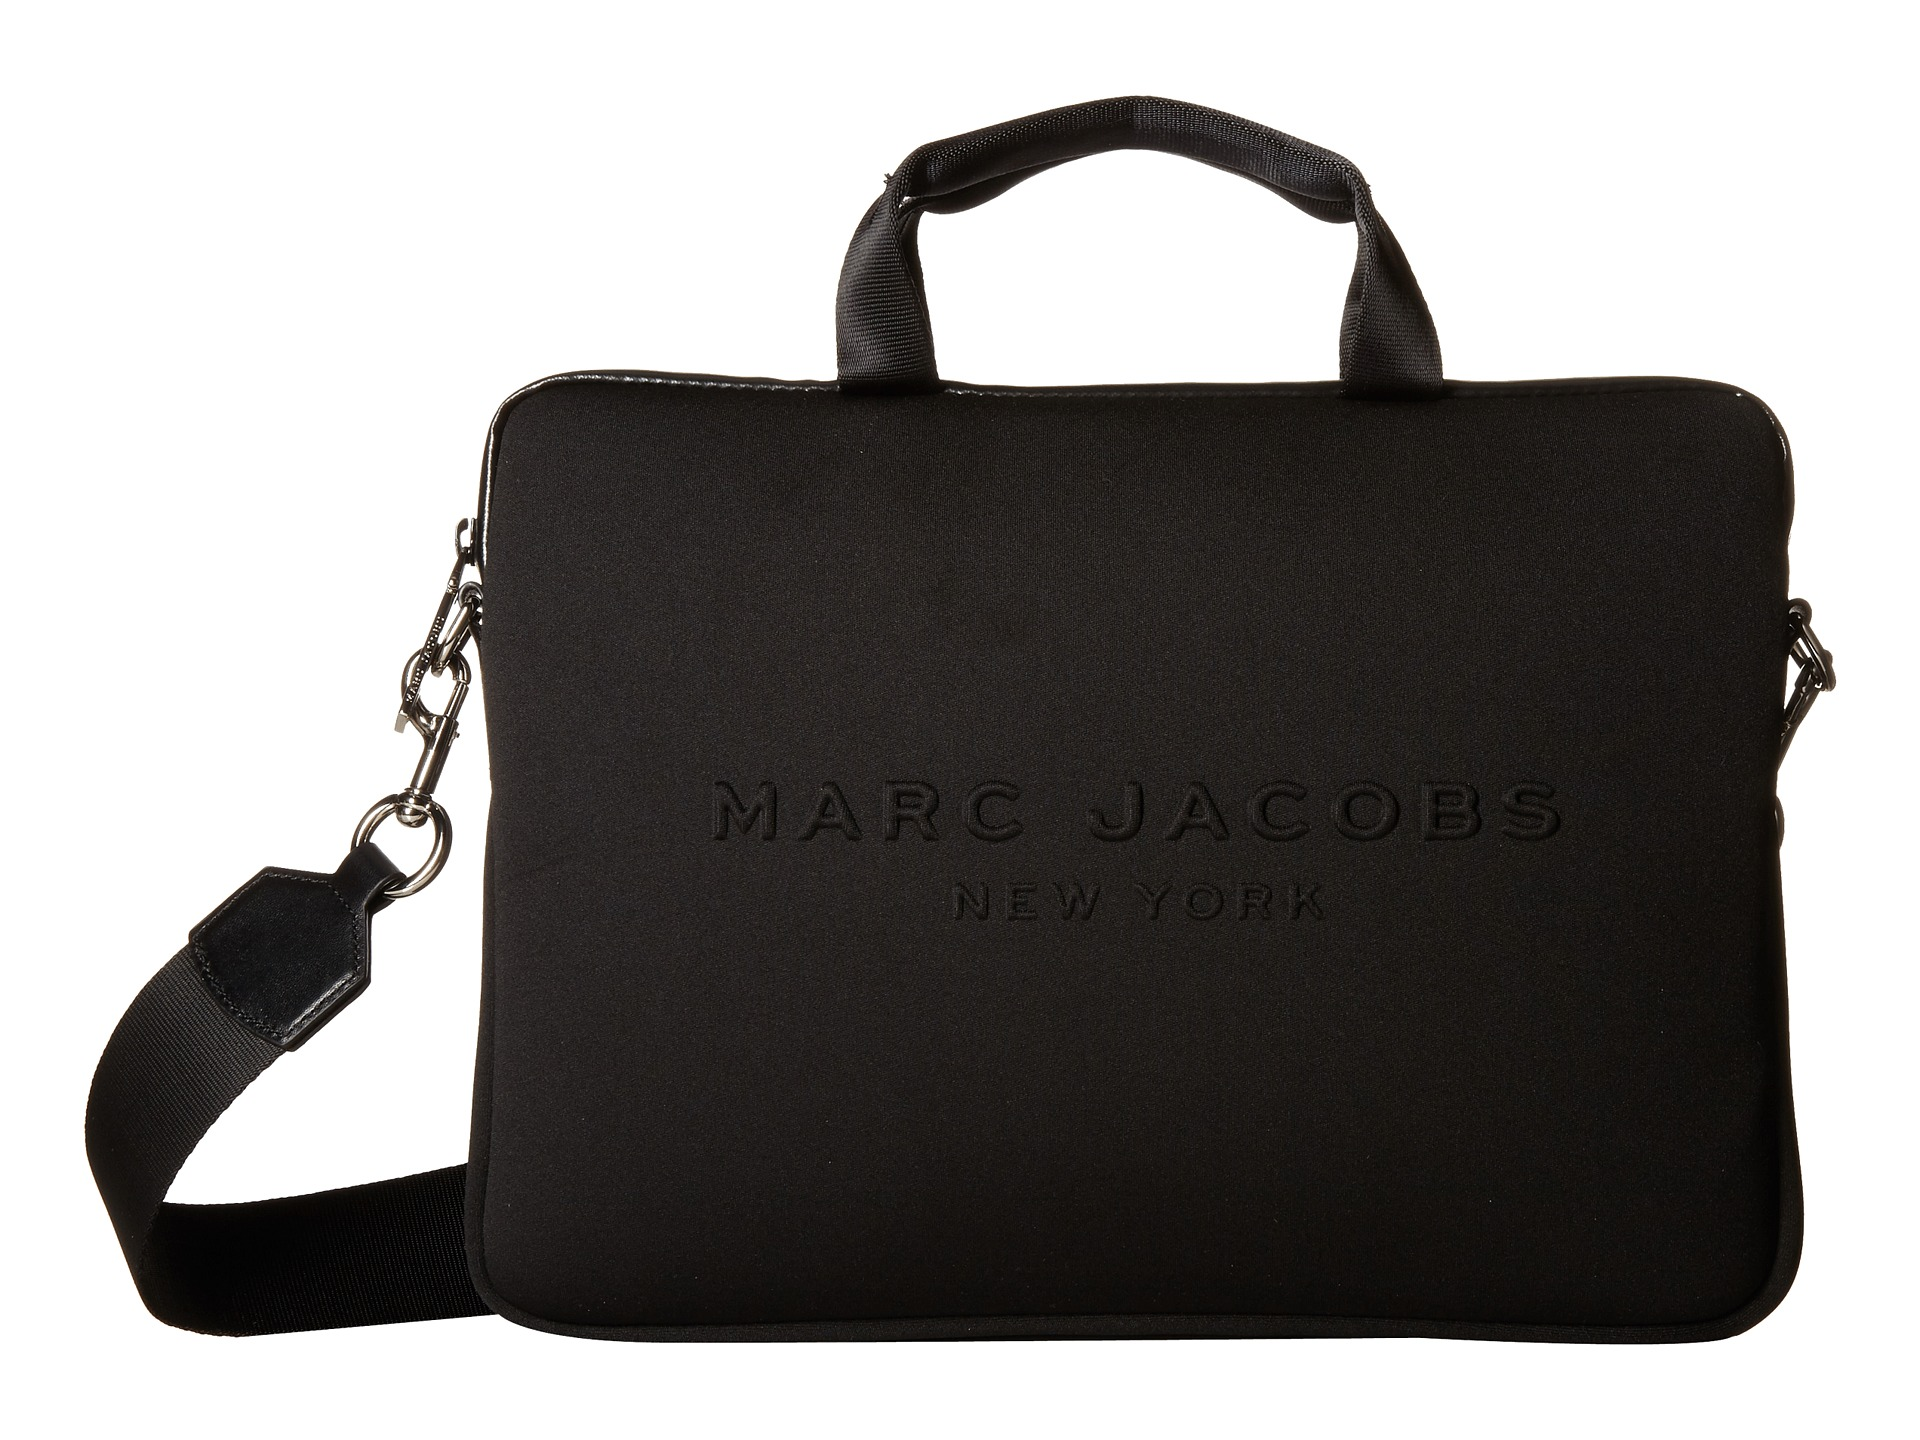 Marc Jacobs Neoprene Tech 13 Commuter Case